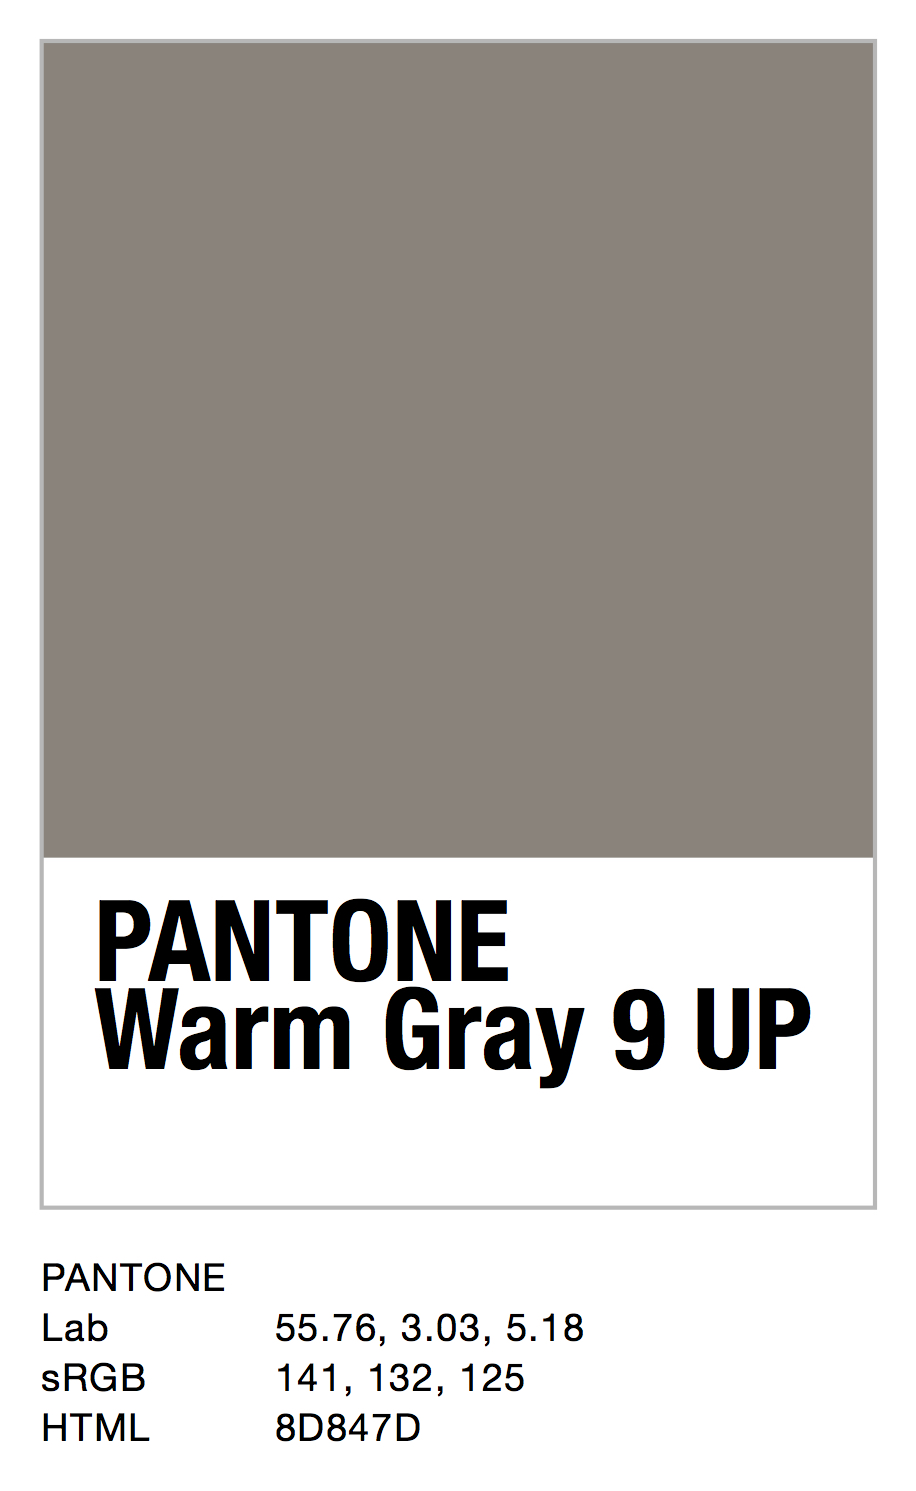 PANTONE Warm Gray 9 UP.jpg